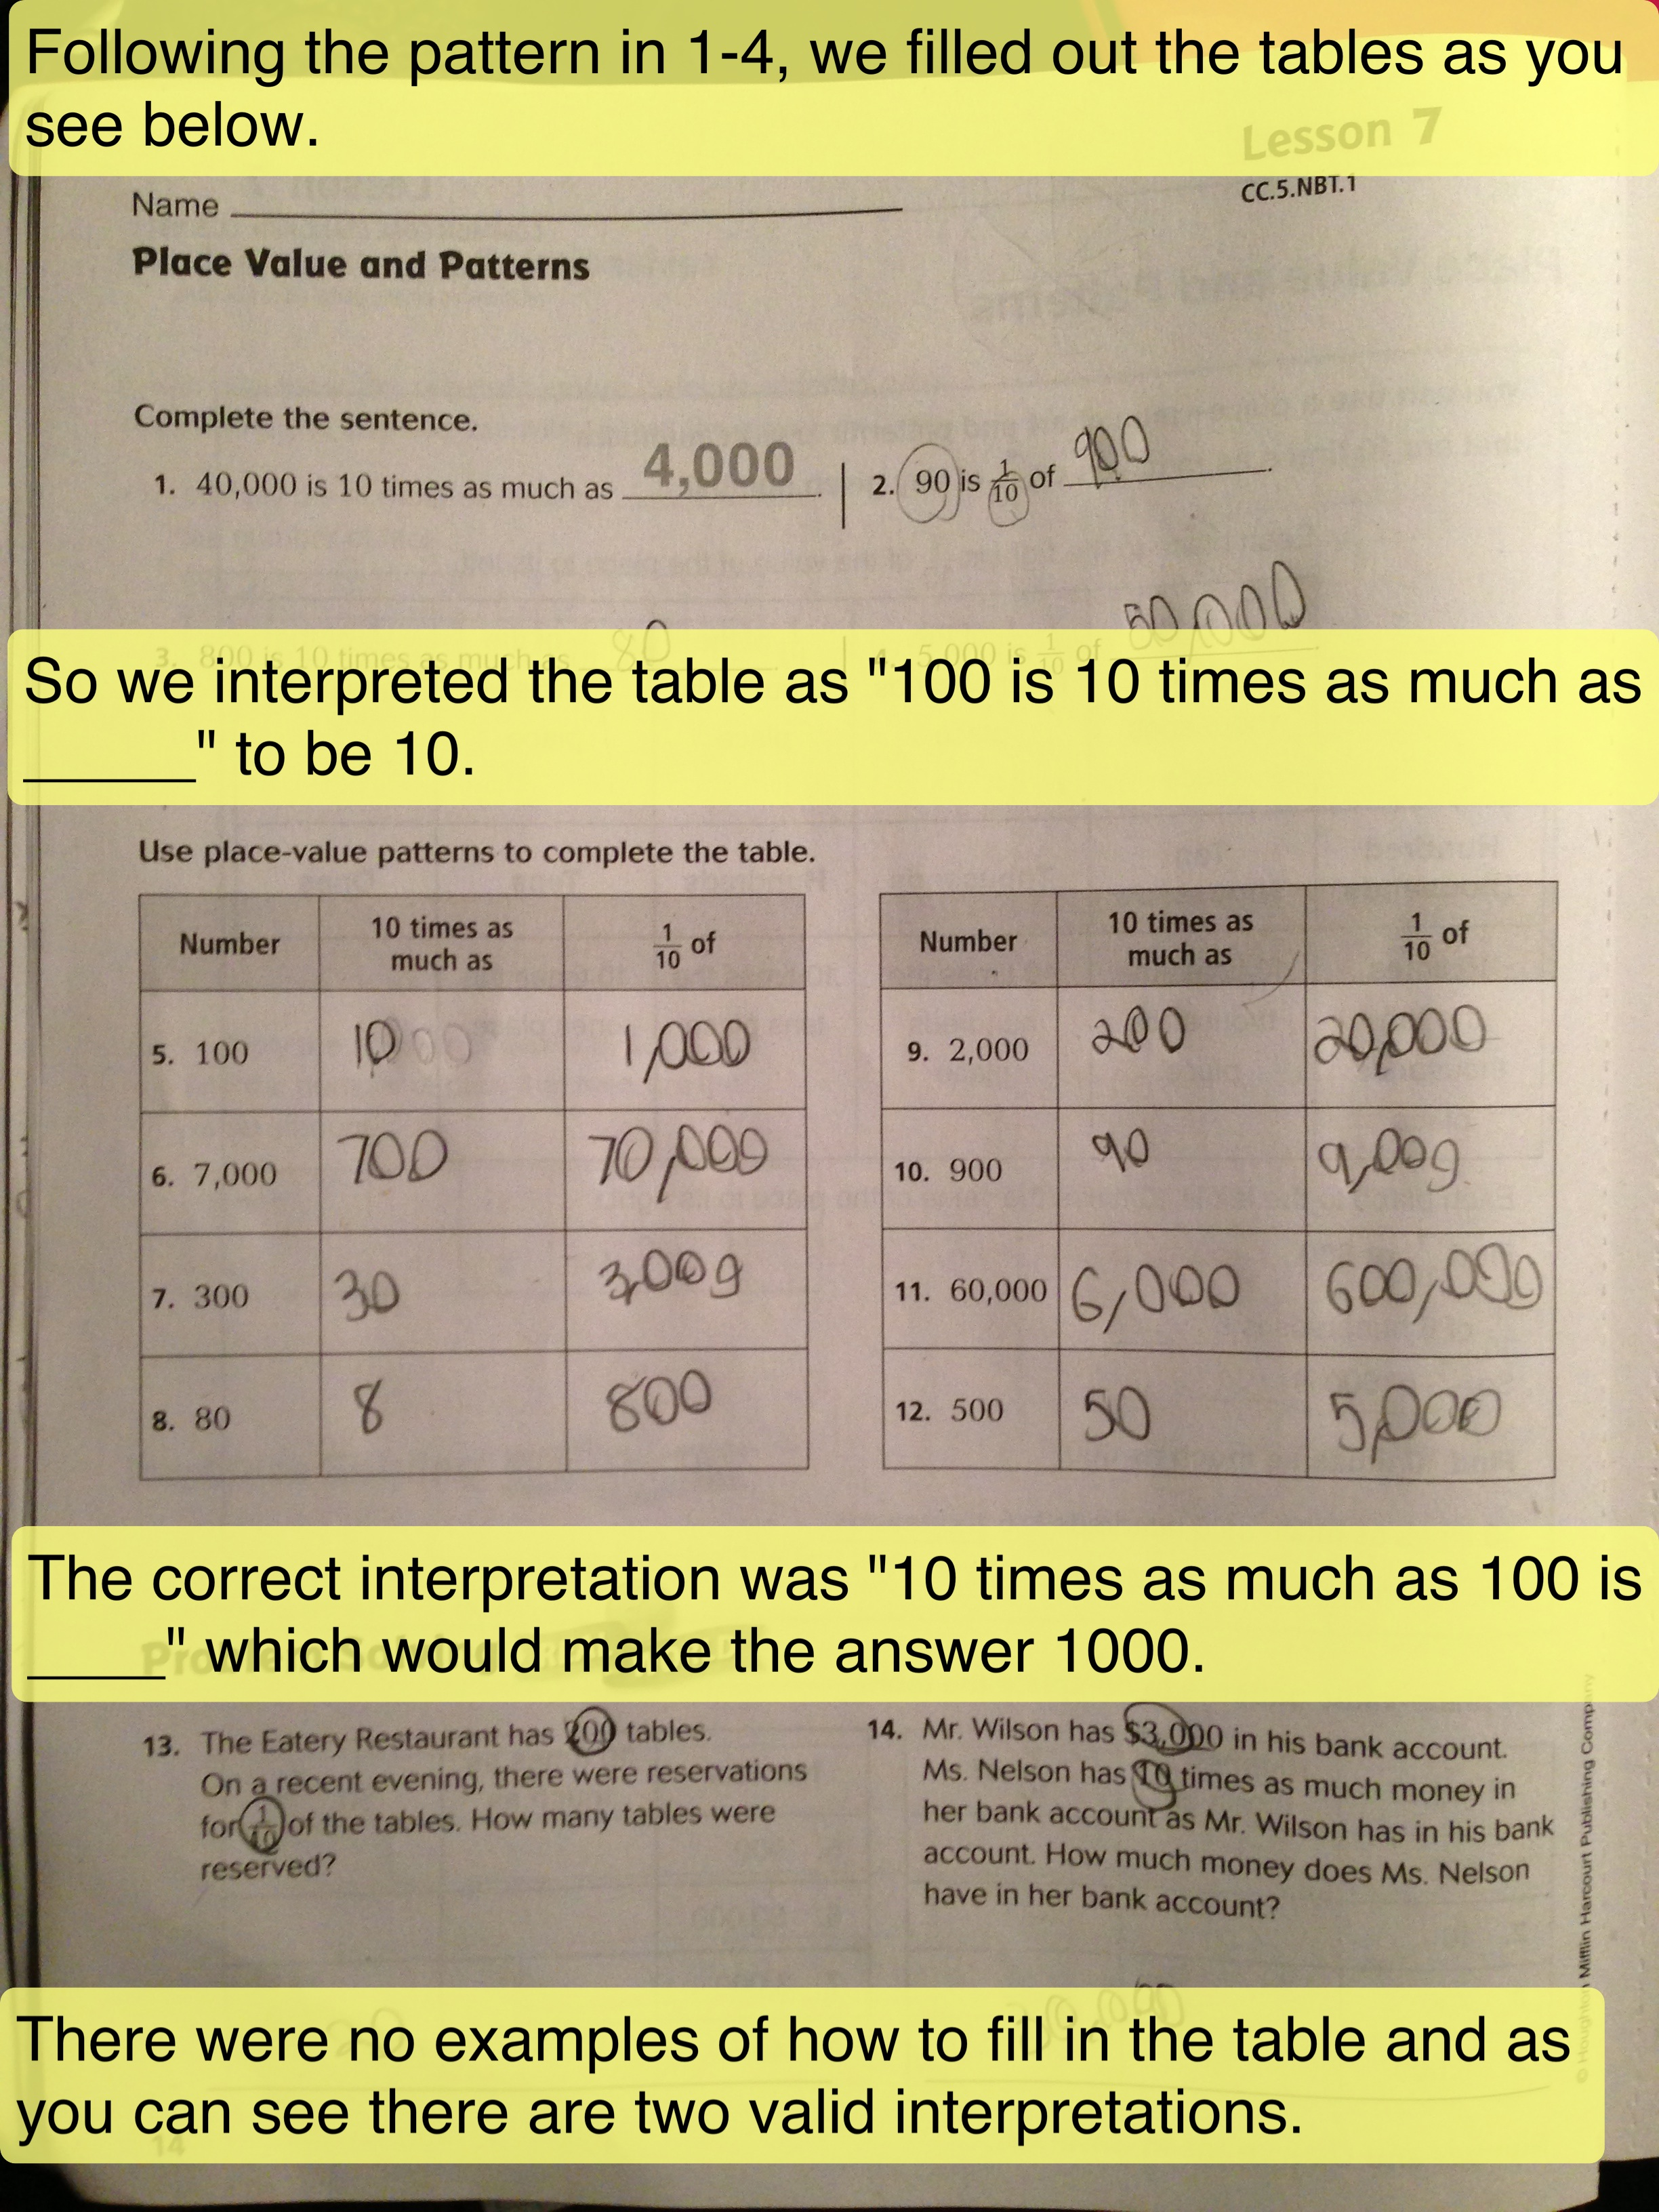 Worksheets Houghton Mifflin Harcourt Math Worksheets What Is Your Experience With Common Core Math? | de